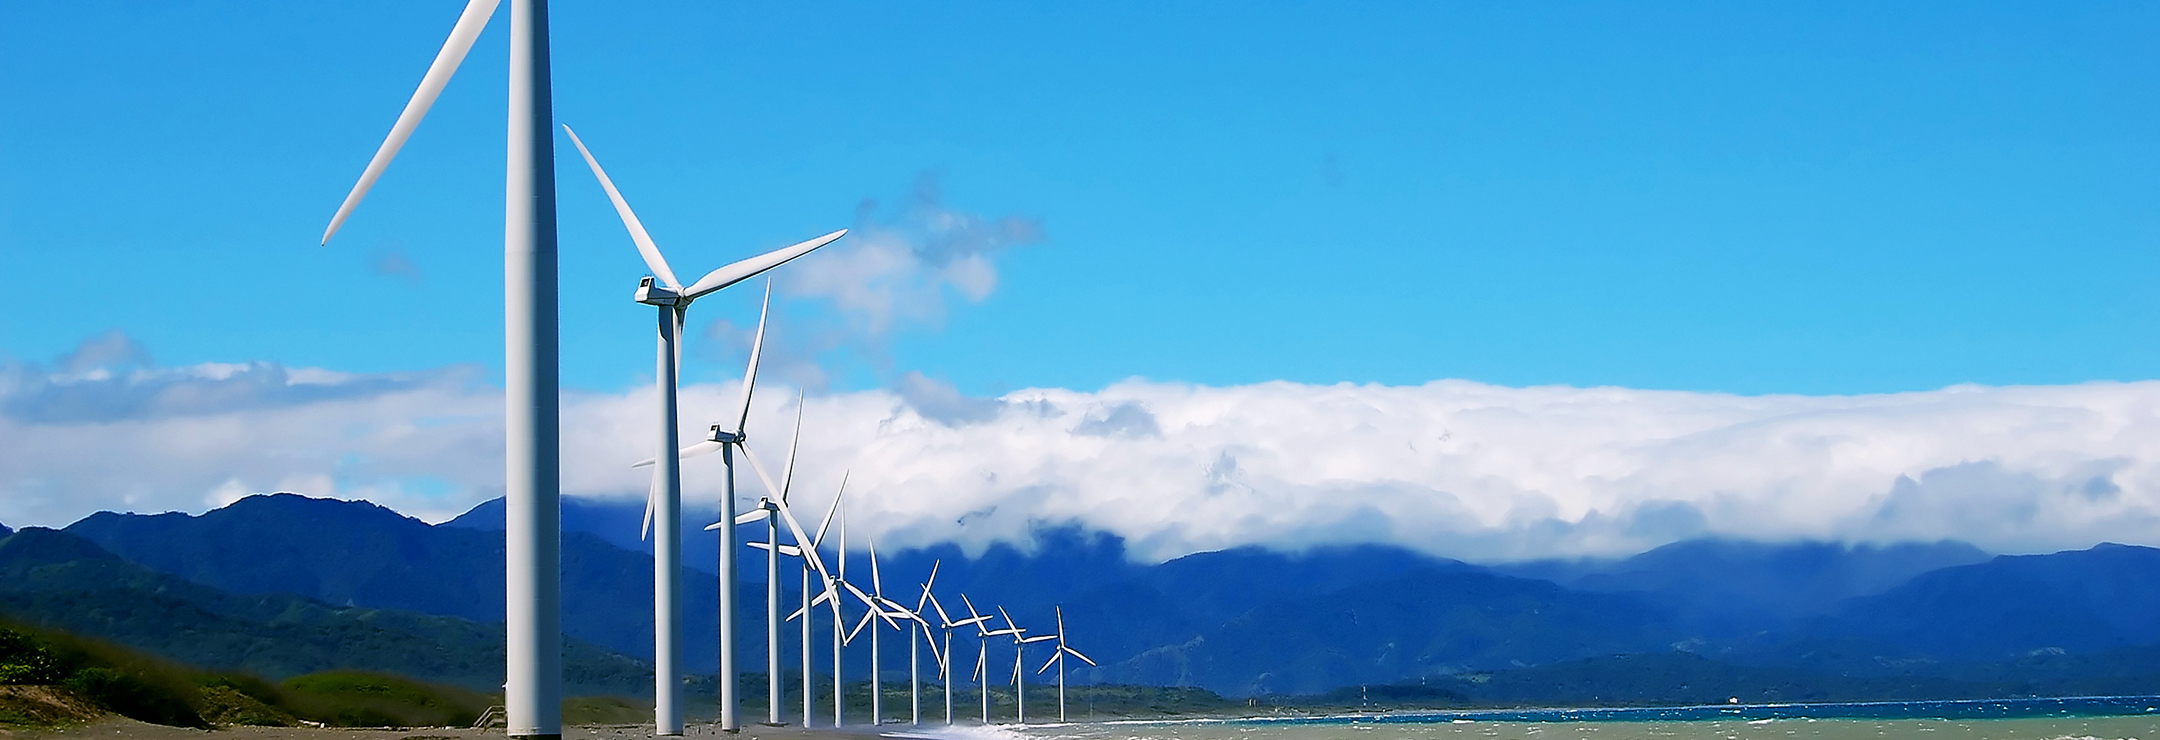 Bangui Wind Farm in Ilocos Norte